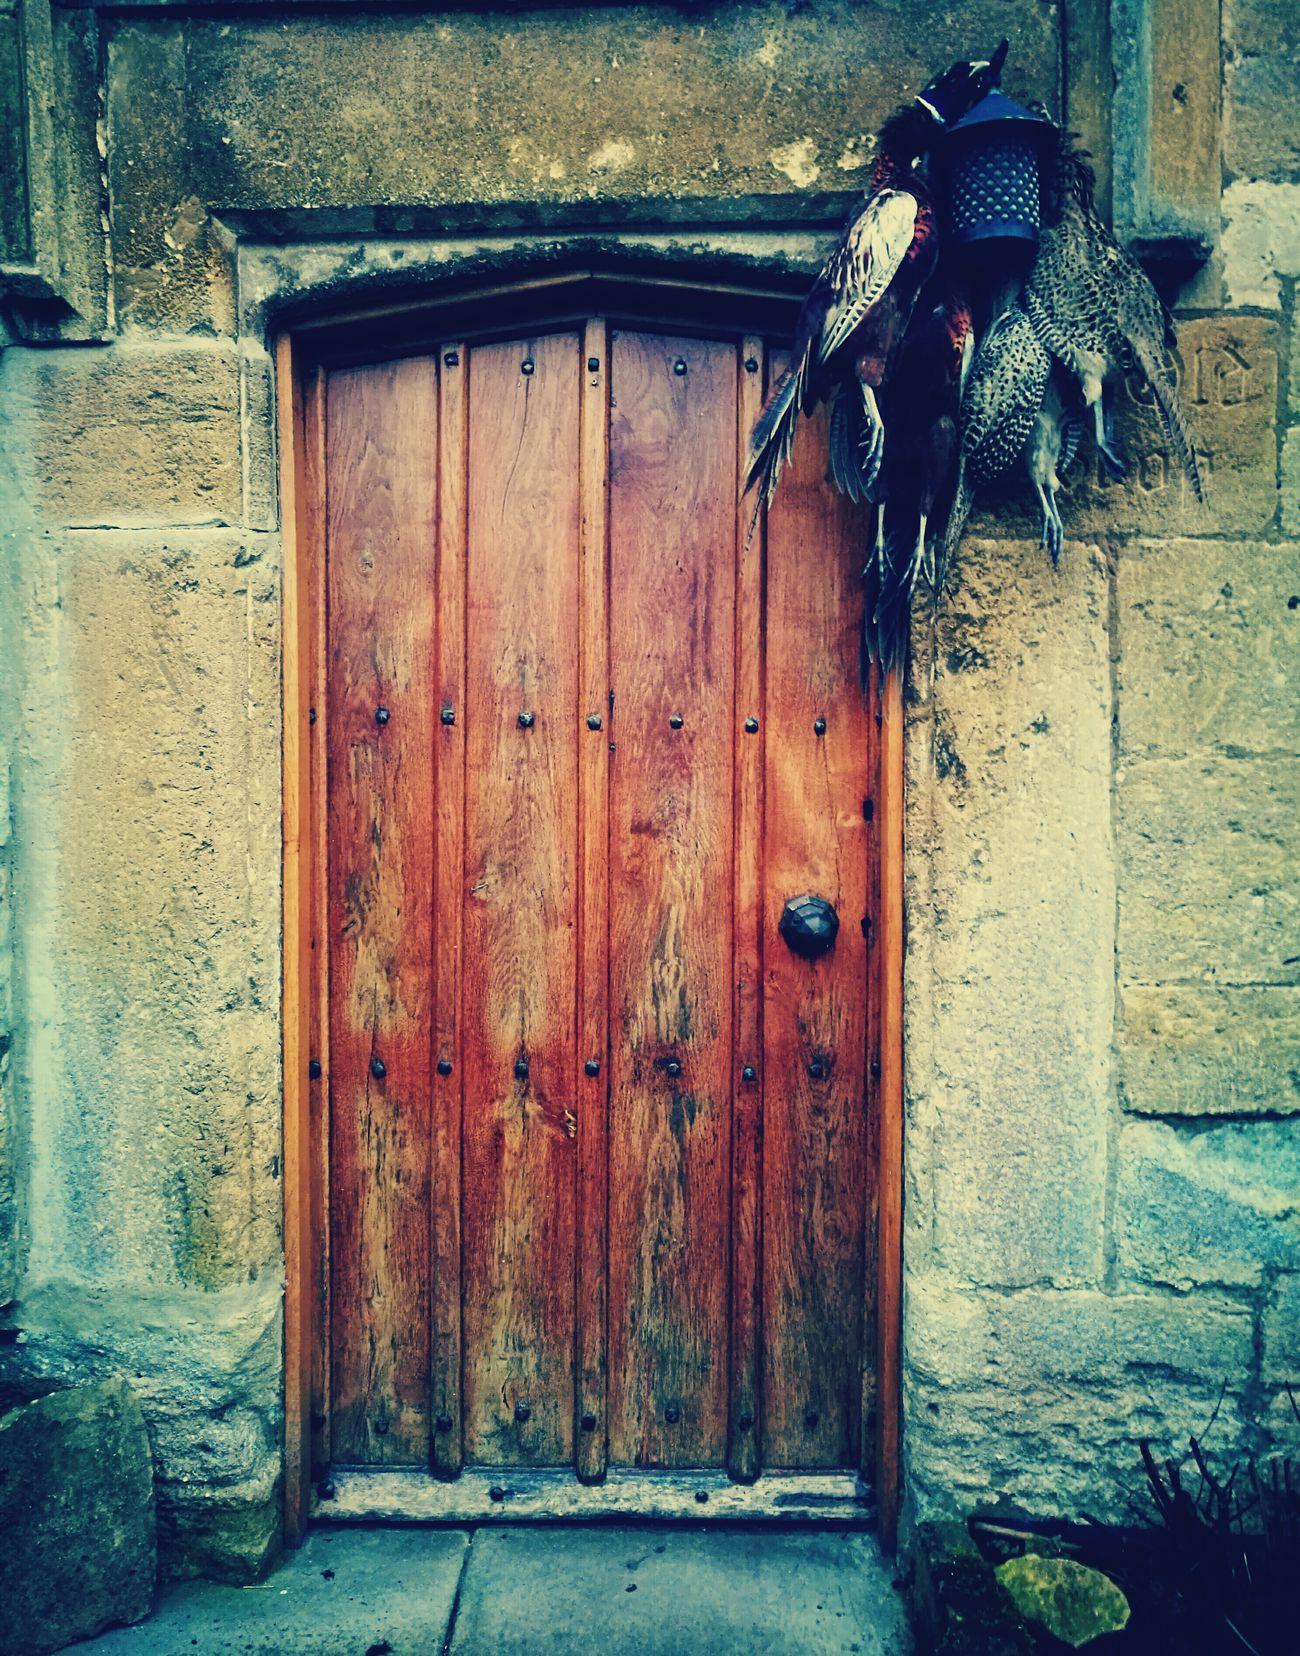 Traditional English door in Bridget Jones country. Pheasants Hunting Tradition Nature VS Man Door Built Structure Building Exterior Outdoors Architecture Close-up Day No People Vintage Stylized Animal Dead Animal Old House Old Building